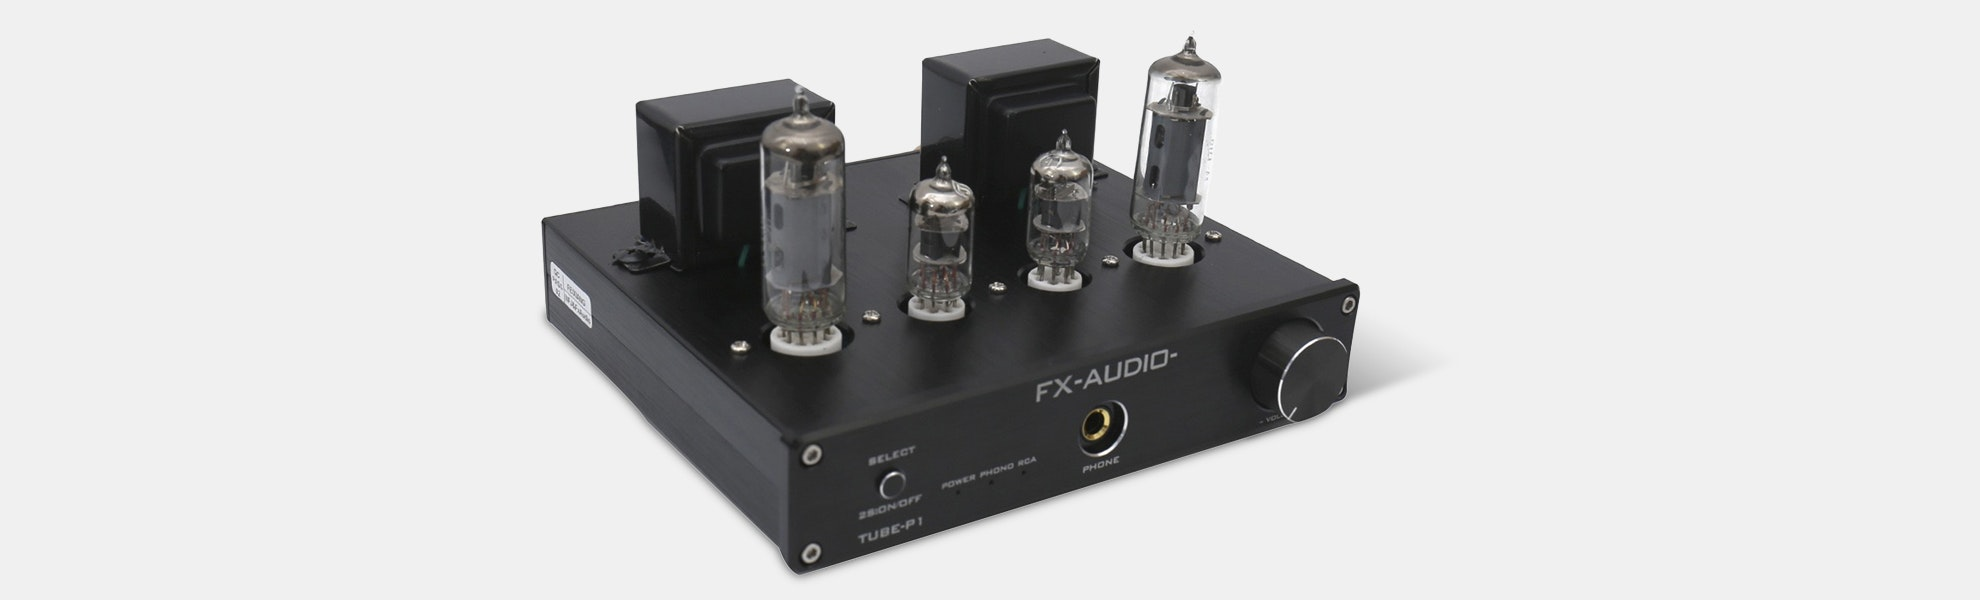 FX Audio Tube-P1 Amplifier